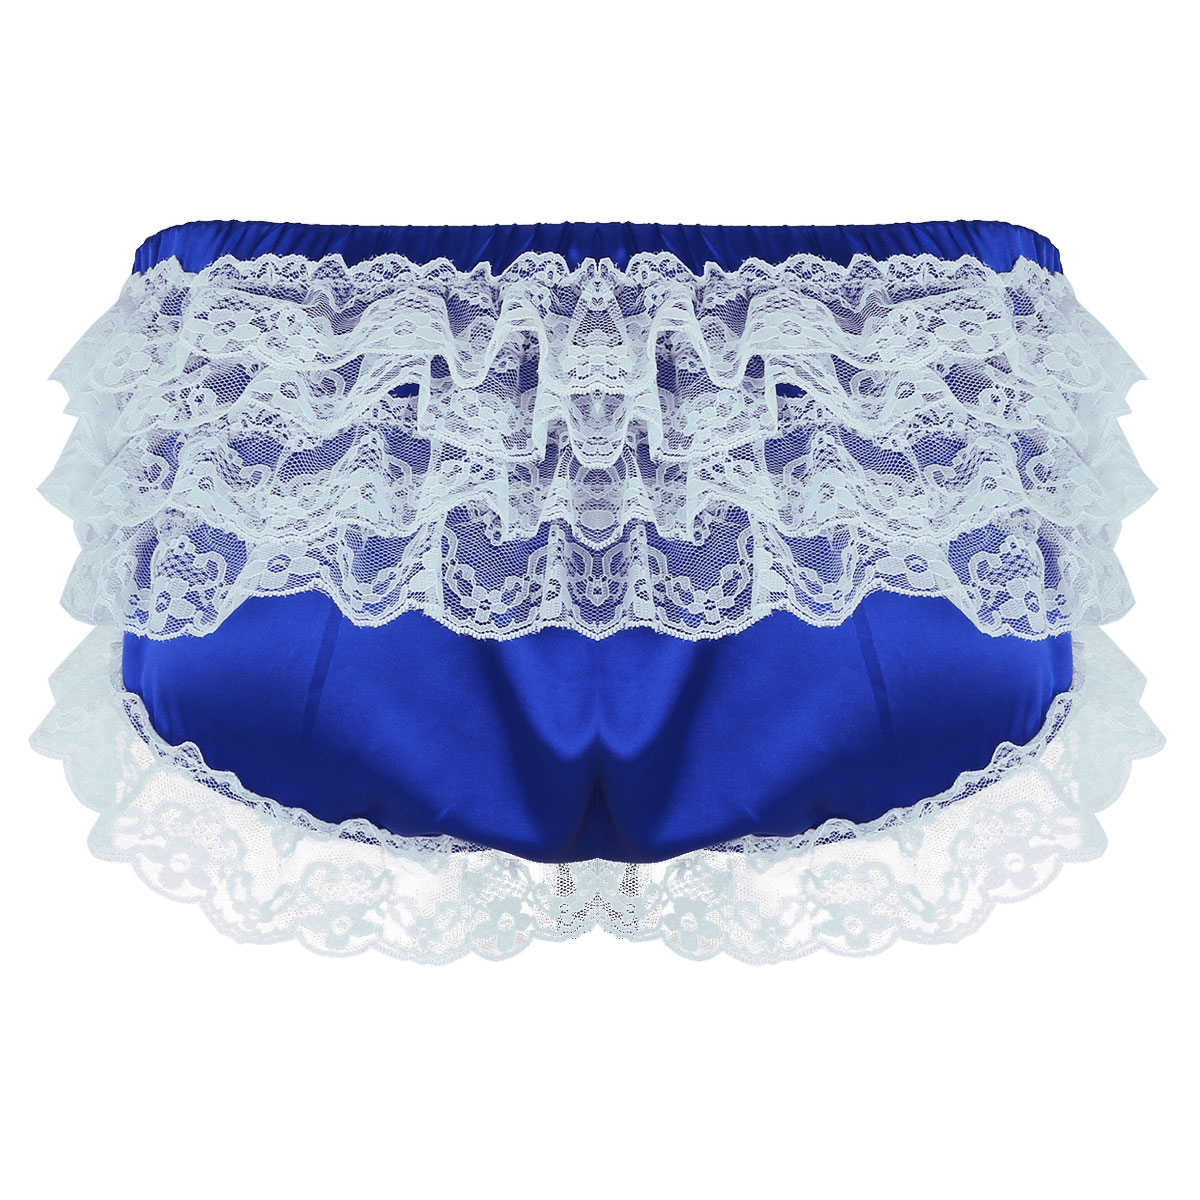 Sissy Gay Soft Ruffled Lace Bowknot Calcinhas Cuecas Homens Biquíni Bottoms Mens Suave Breves Sexy Shorts Cueca Cuecas Cuecas